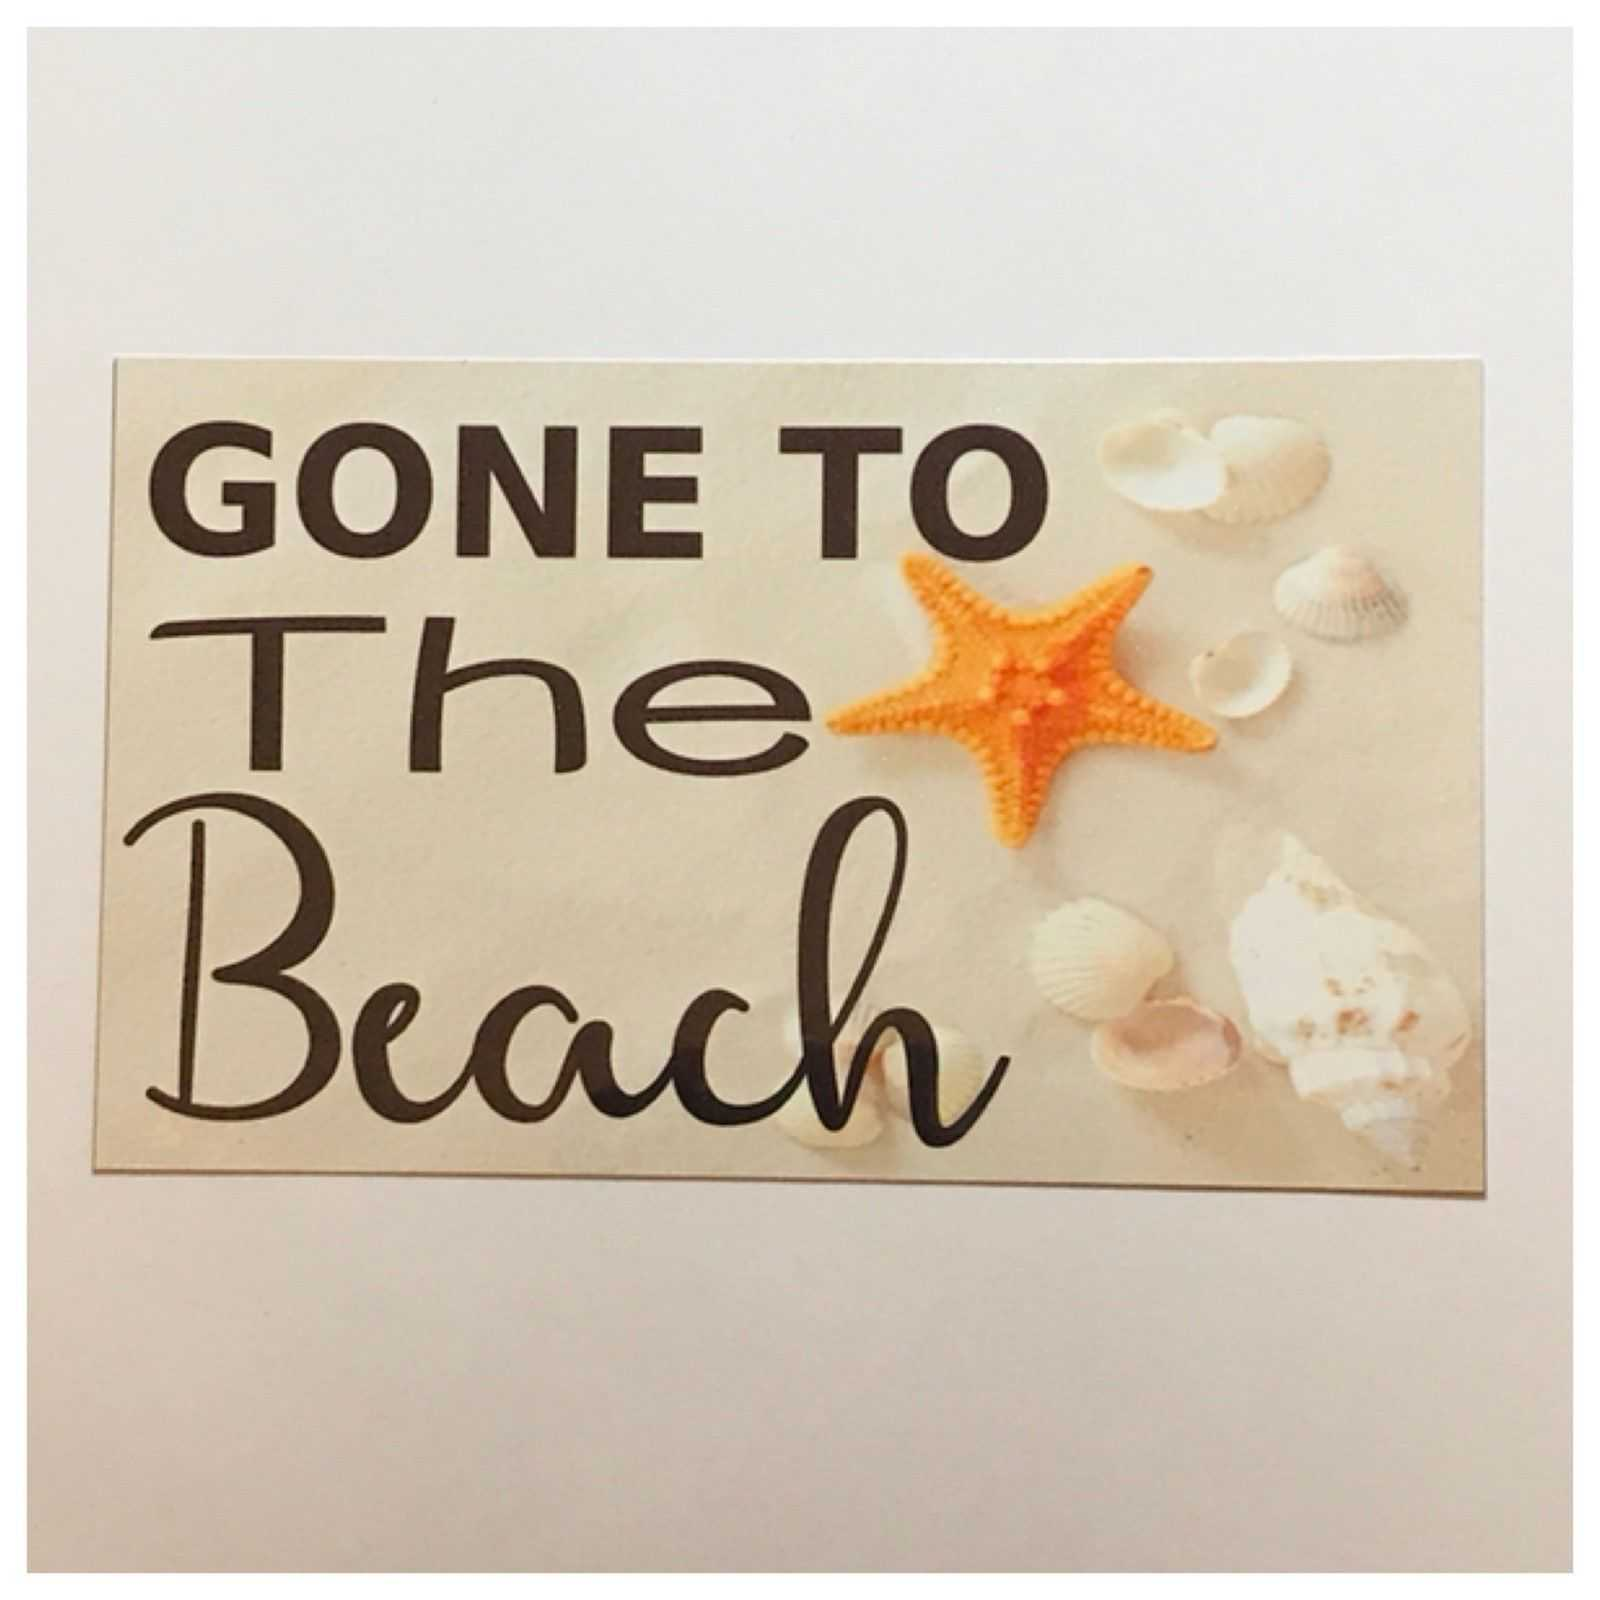 Gone To The Beach House Sign Wall Plaque or Hanging Plaques & Signs The Renmy Store